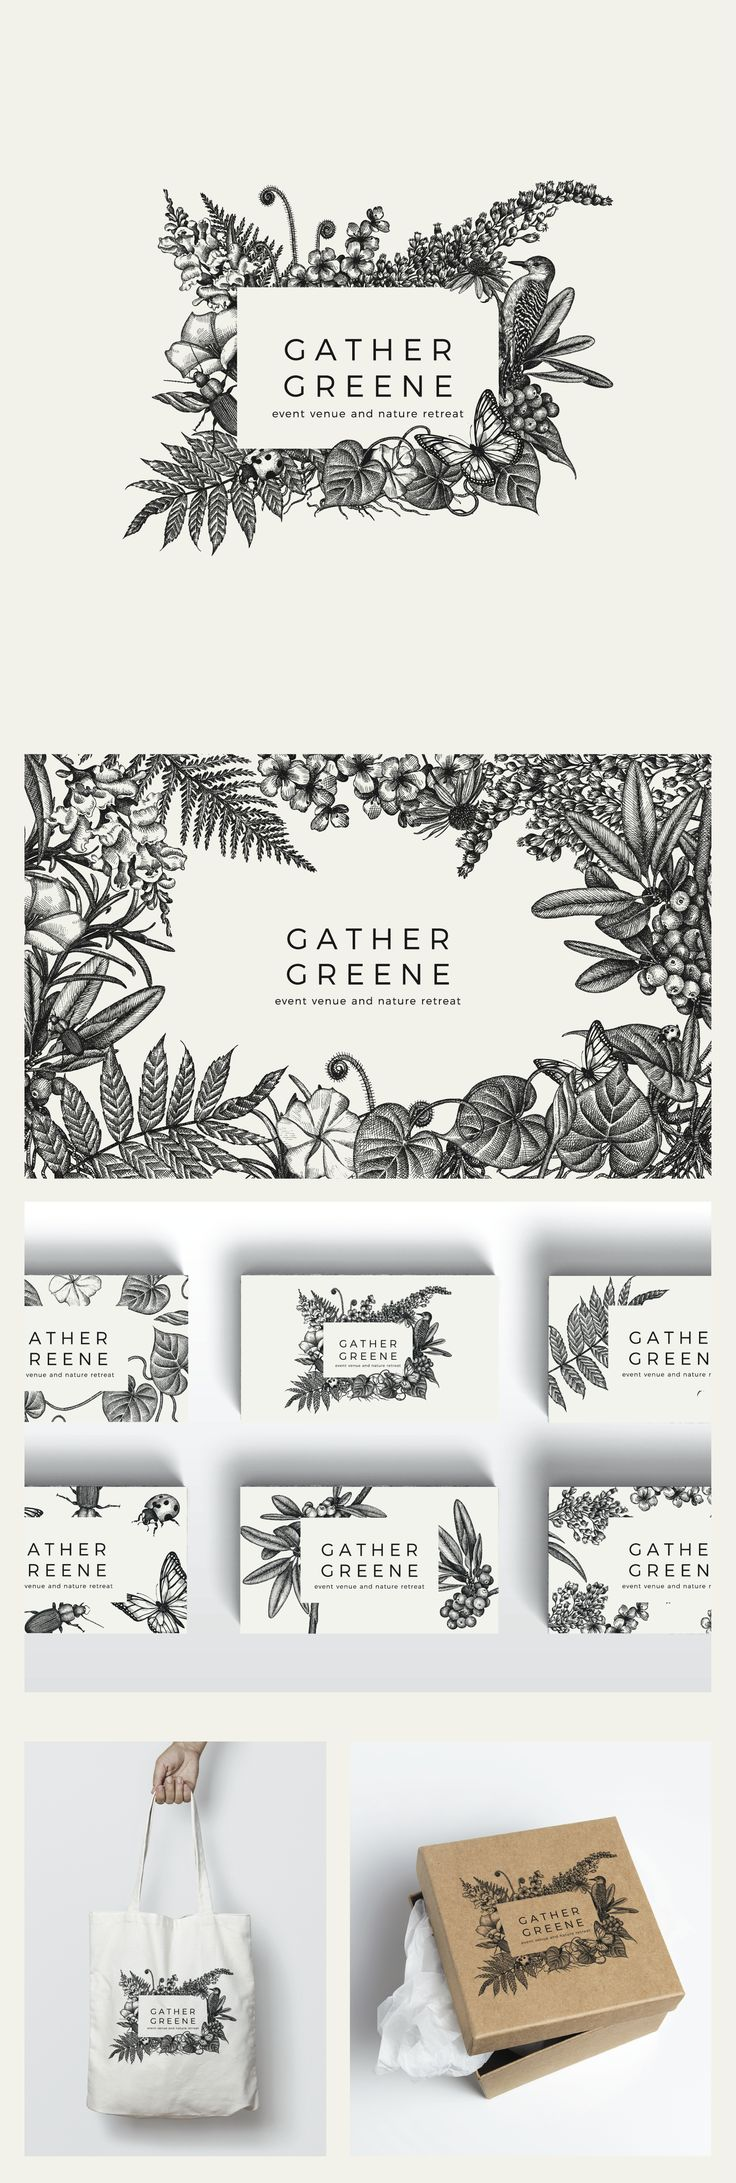 Botanically inspired logo design and brand identity pack for Gather Greene Event Venue. Graphic Inspiration.